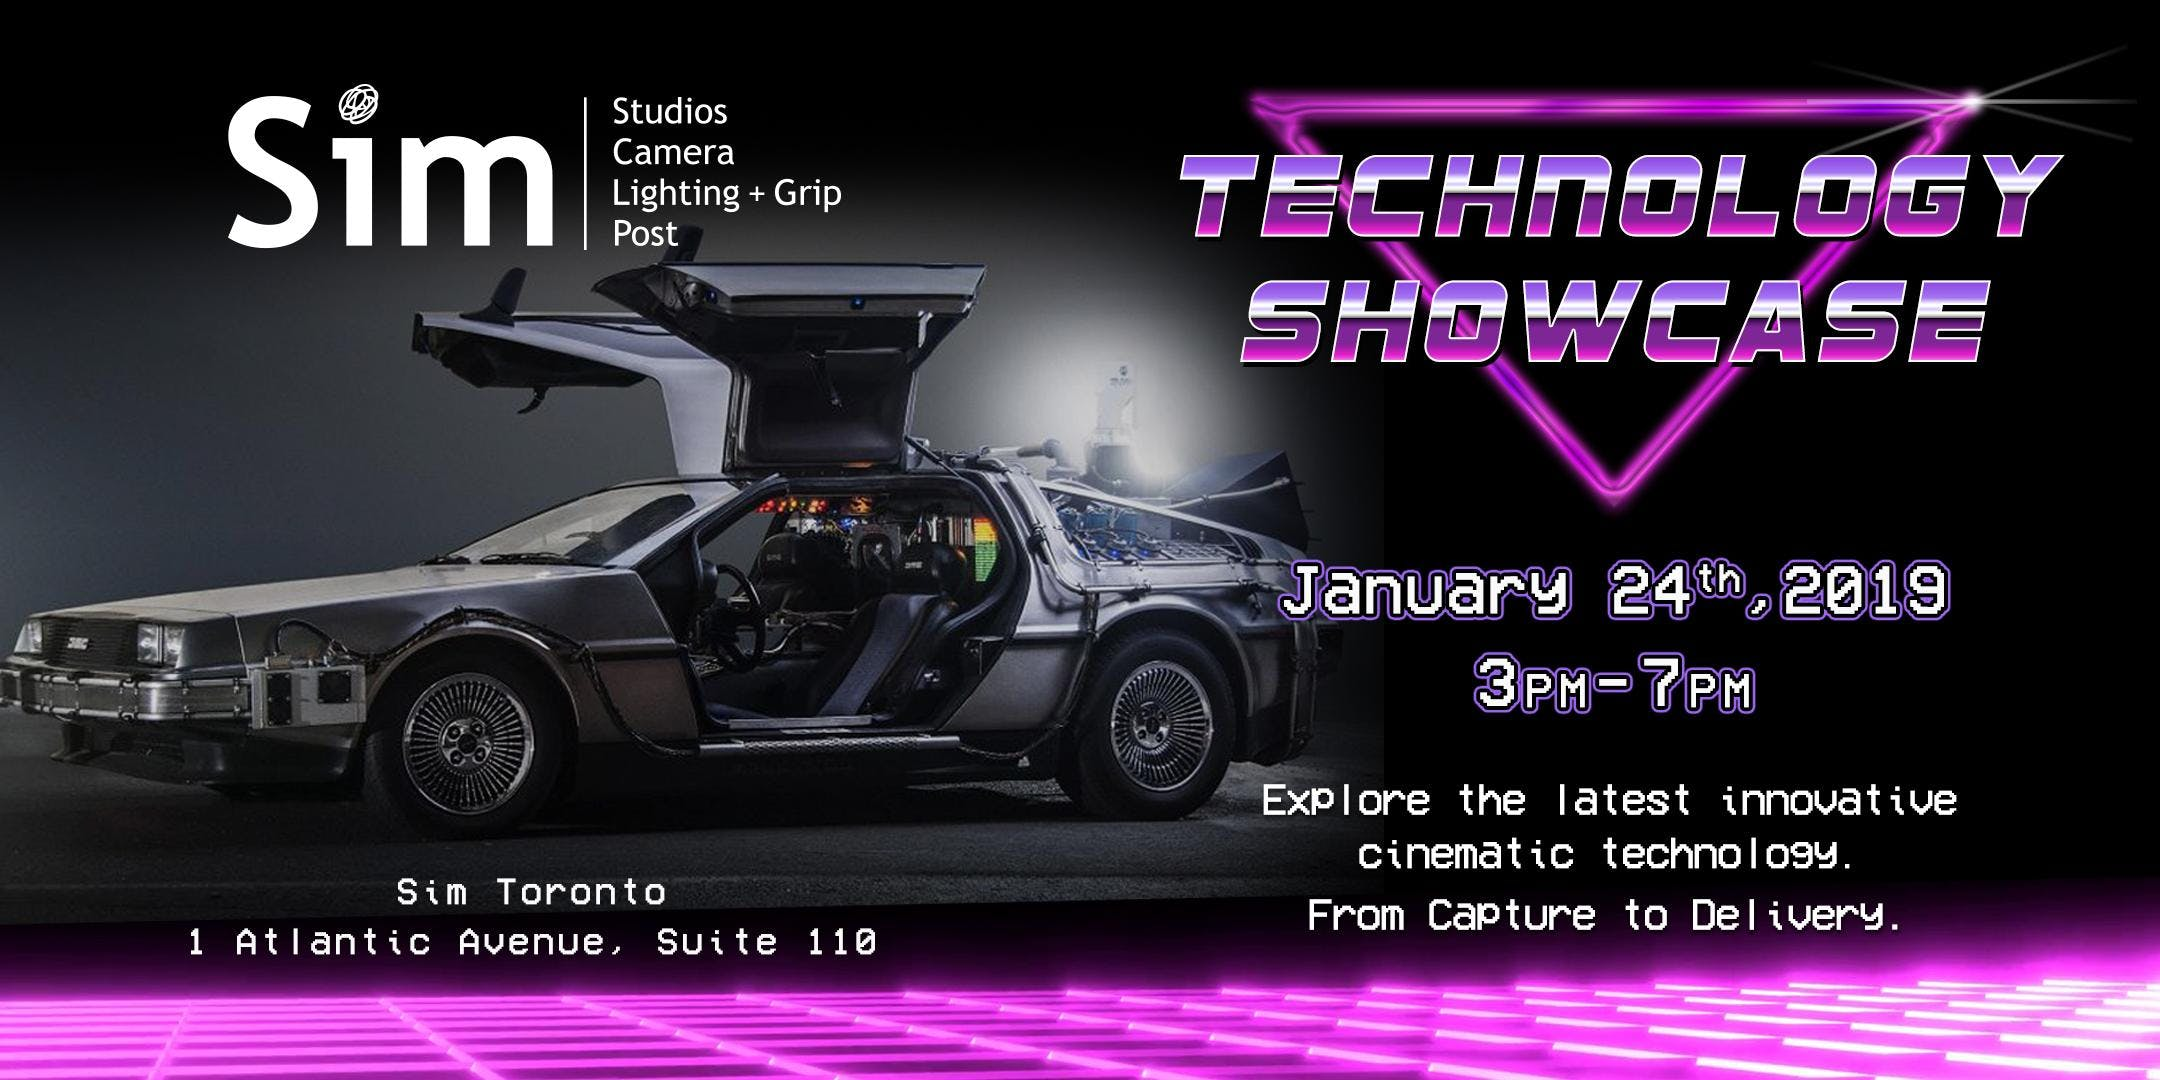 Sim Toronto Technology Showcase